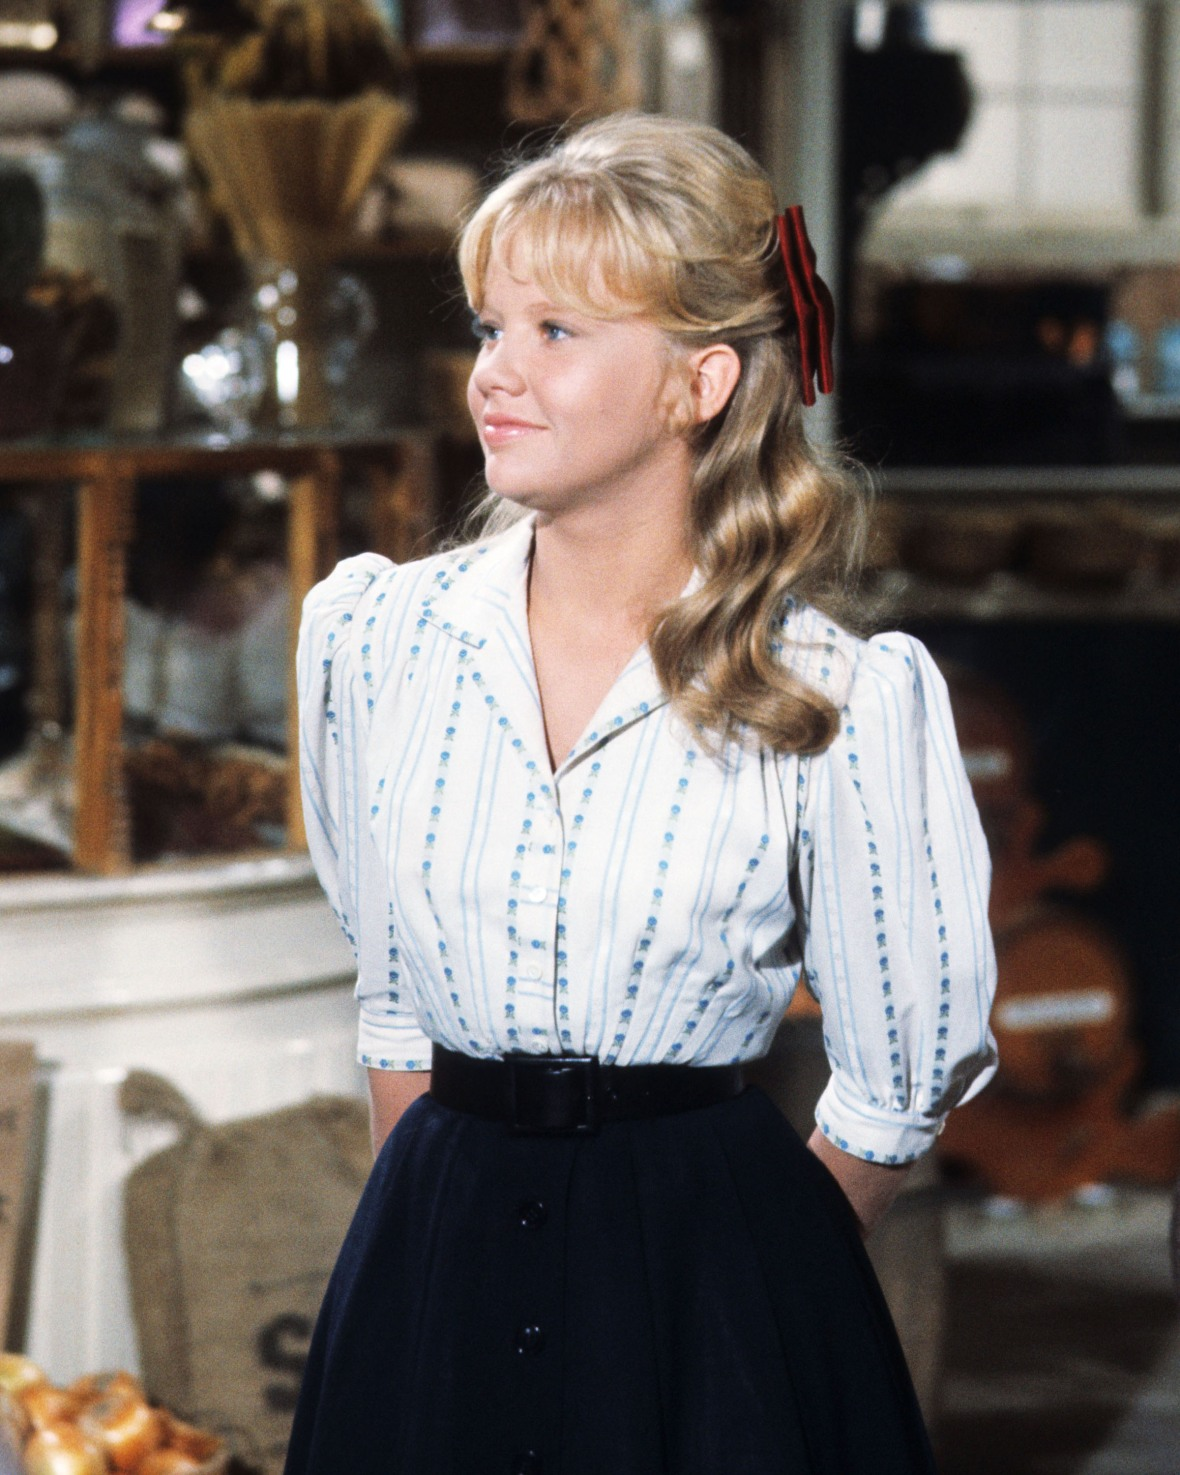 hayley mills young getty images